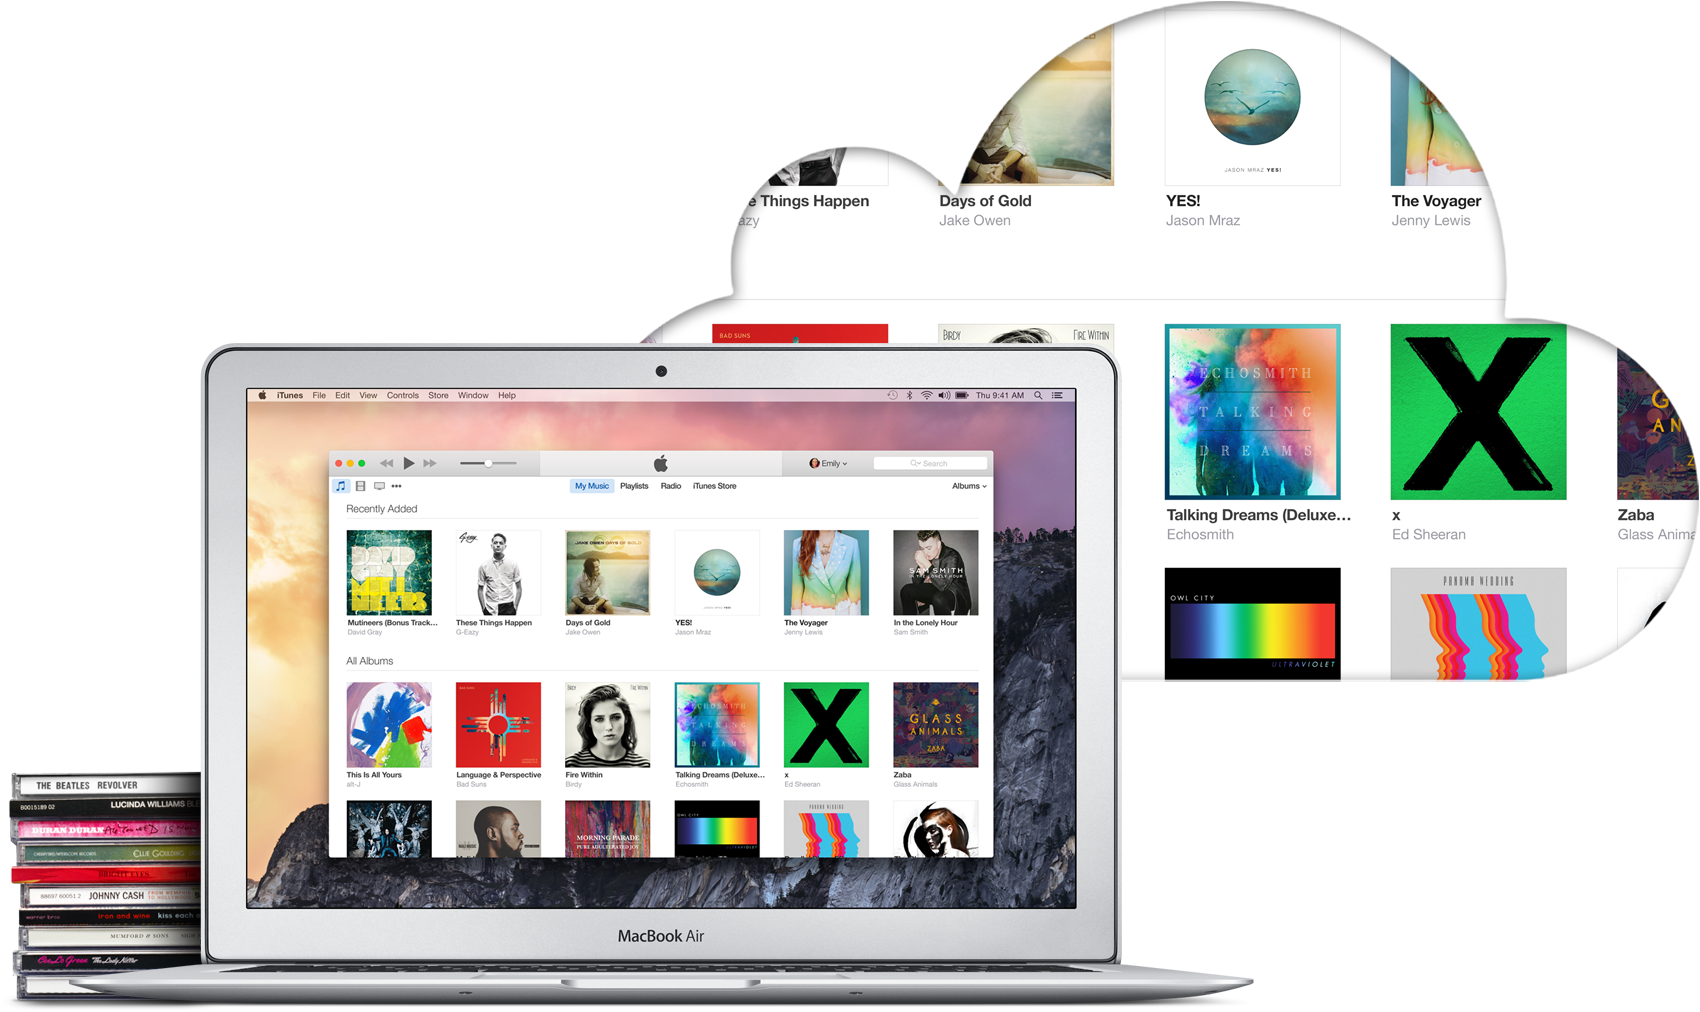 iTunes Match Mac CDs Cloud